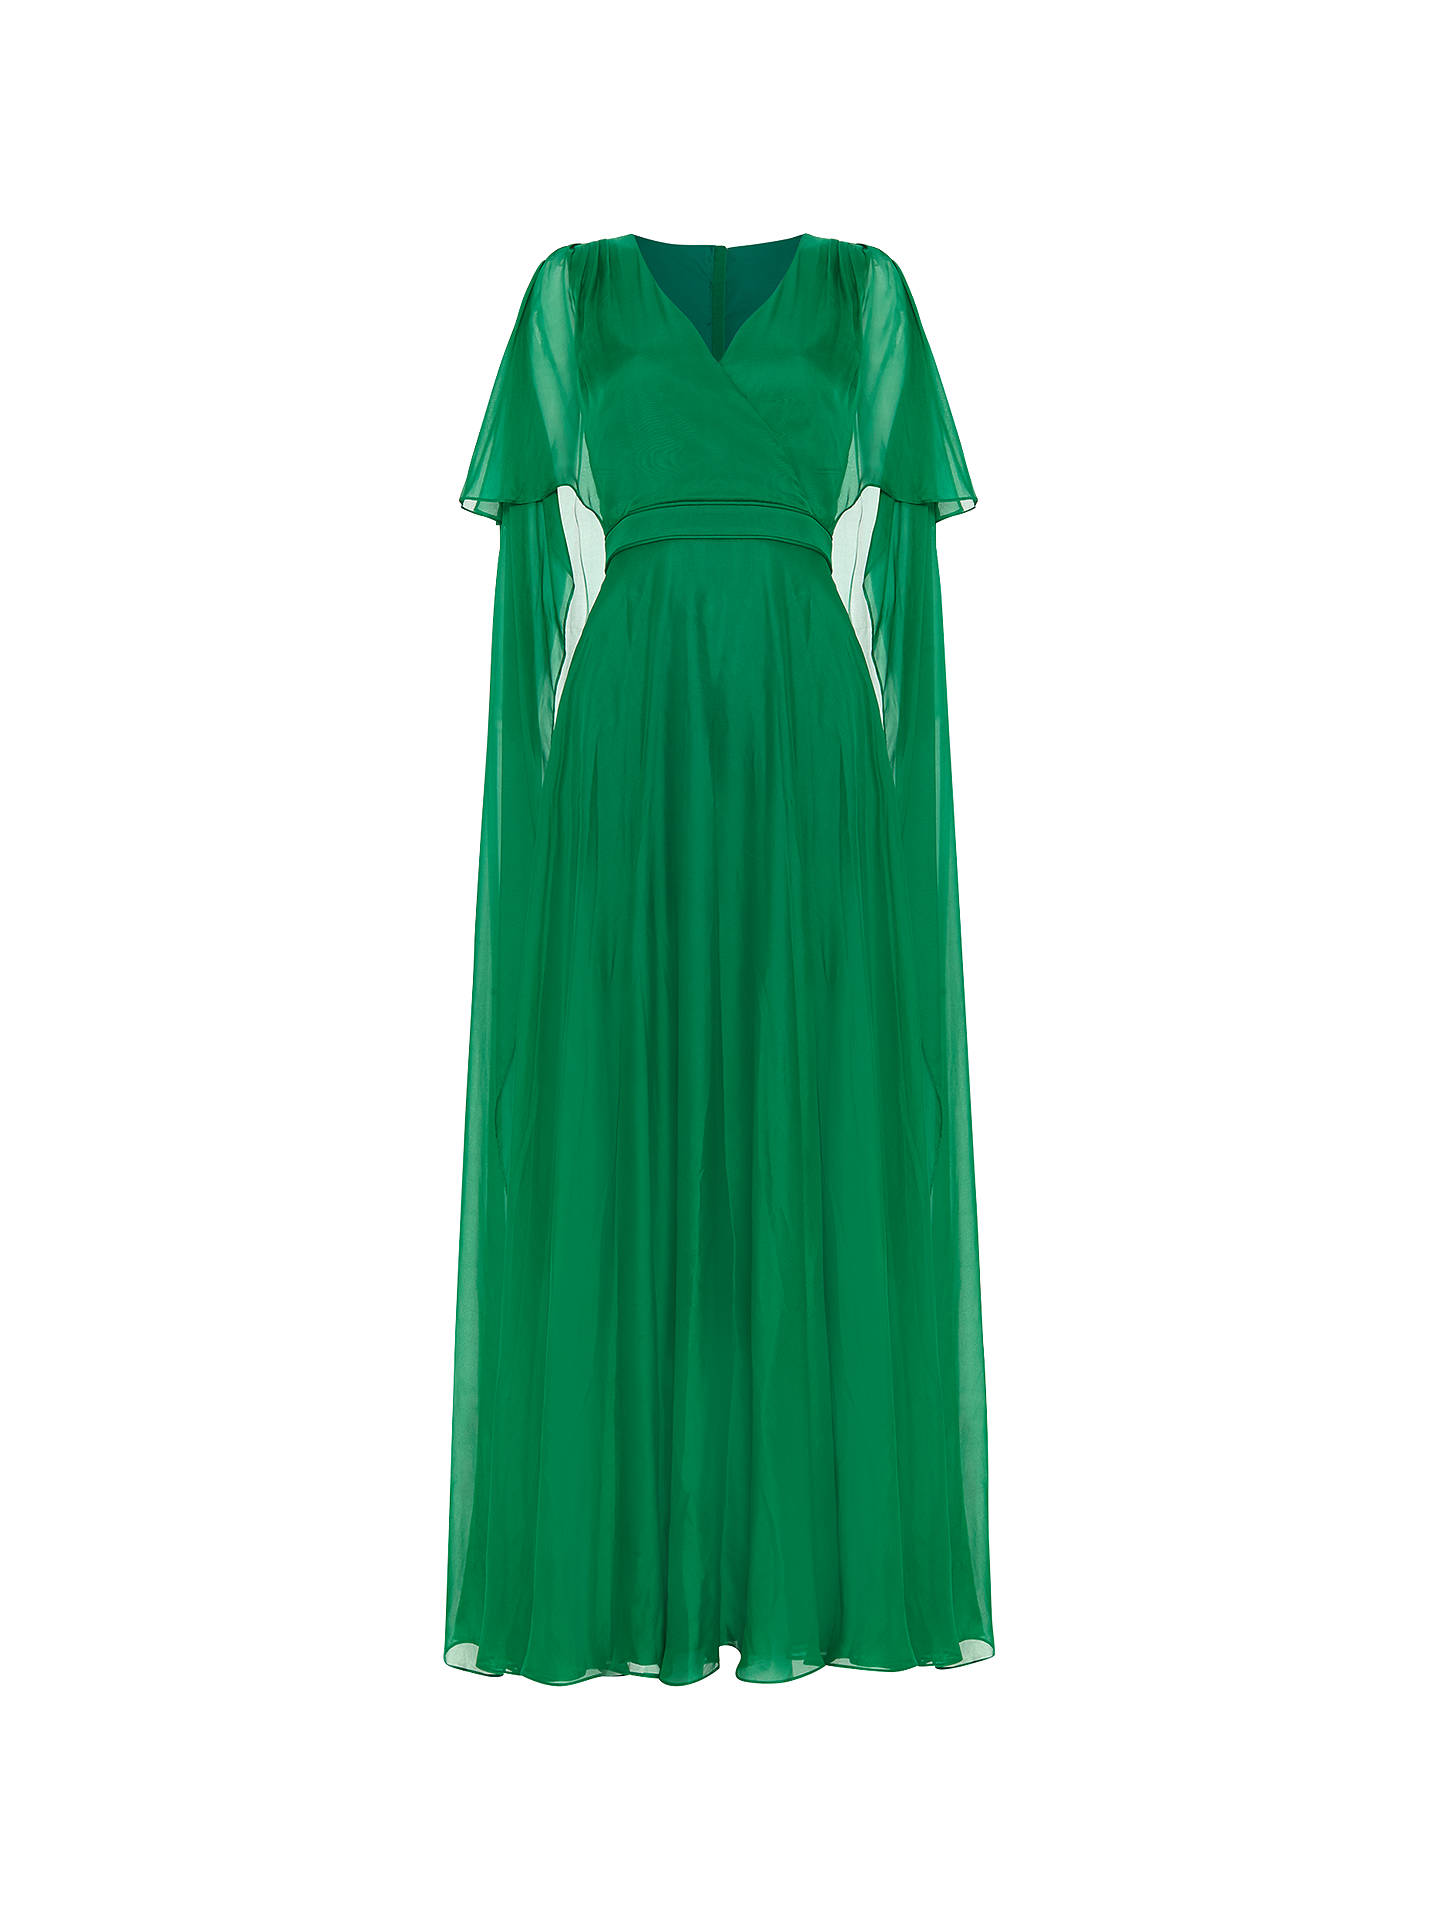 BuyPhase Eight Arwen Silk Drape Gown, Green, 8 Online at johnlewis.com